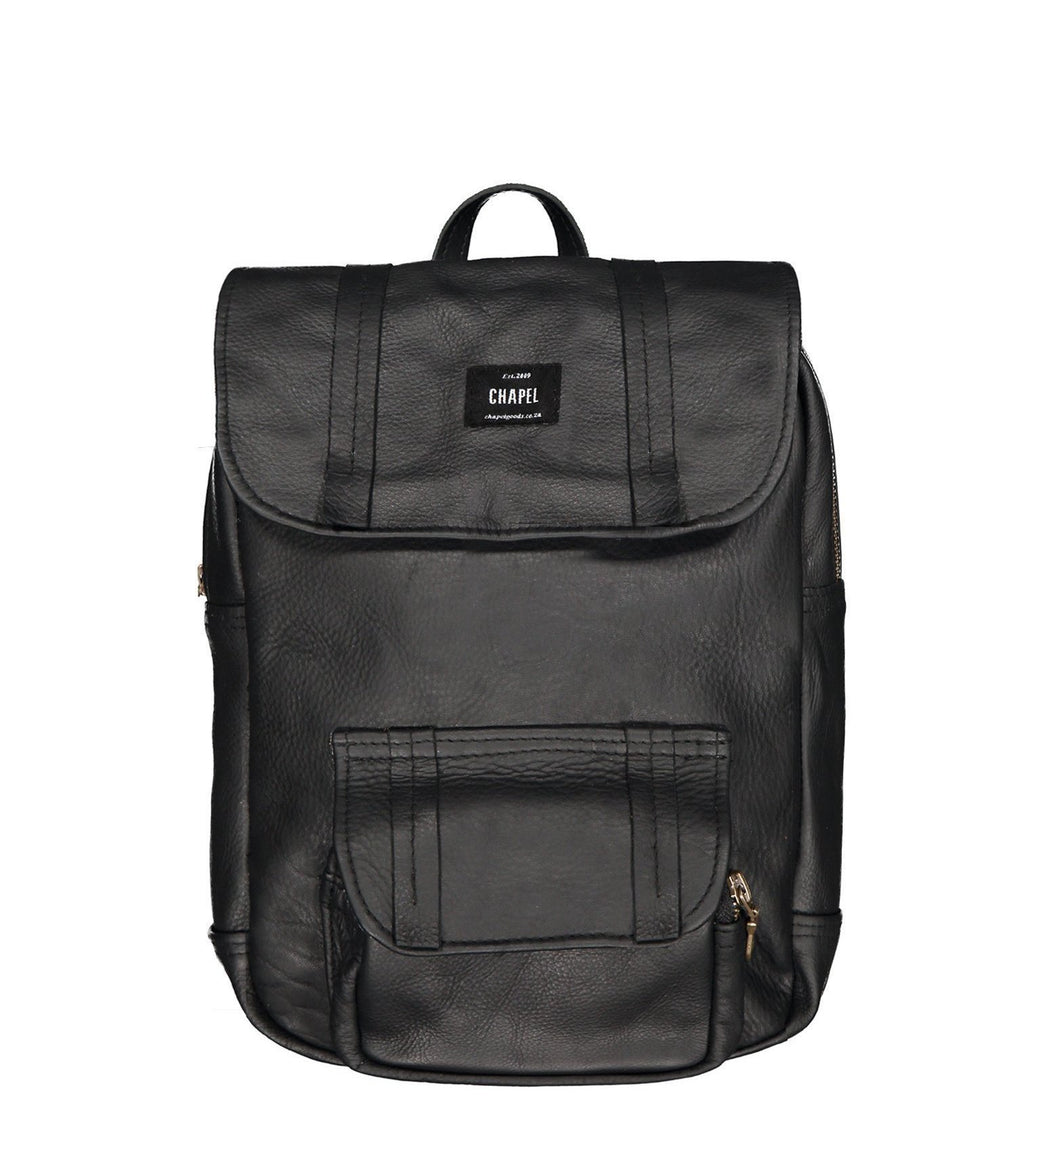 Mini Rider - Leather Backpack CHAPEL Black